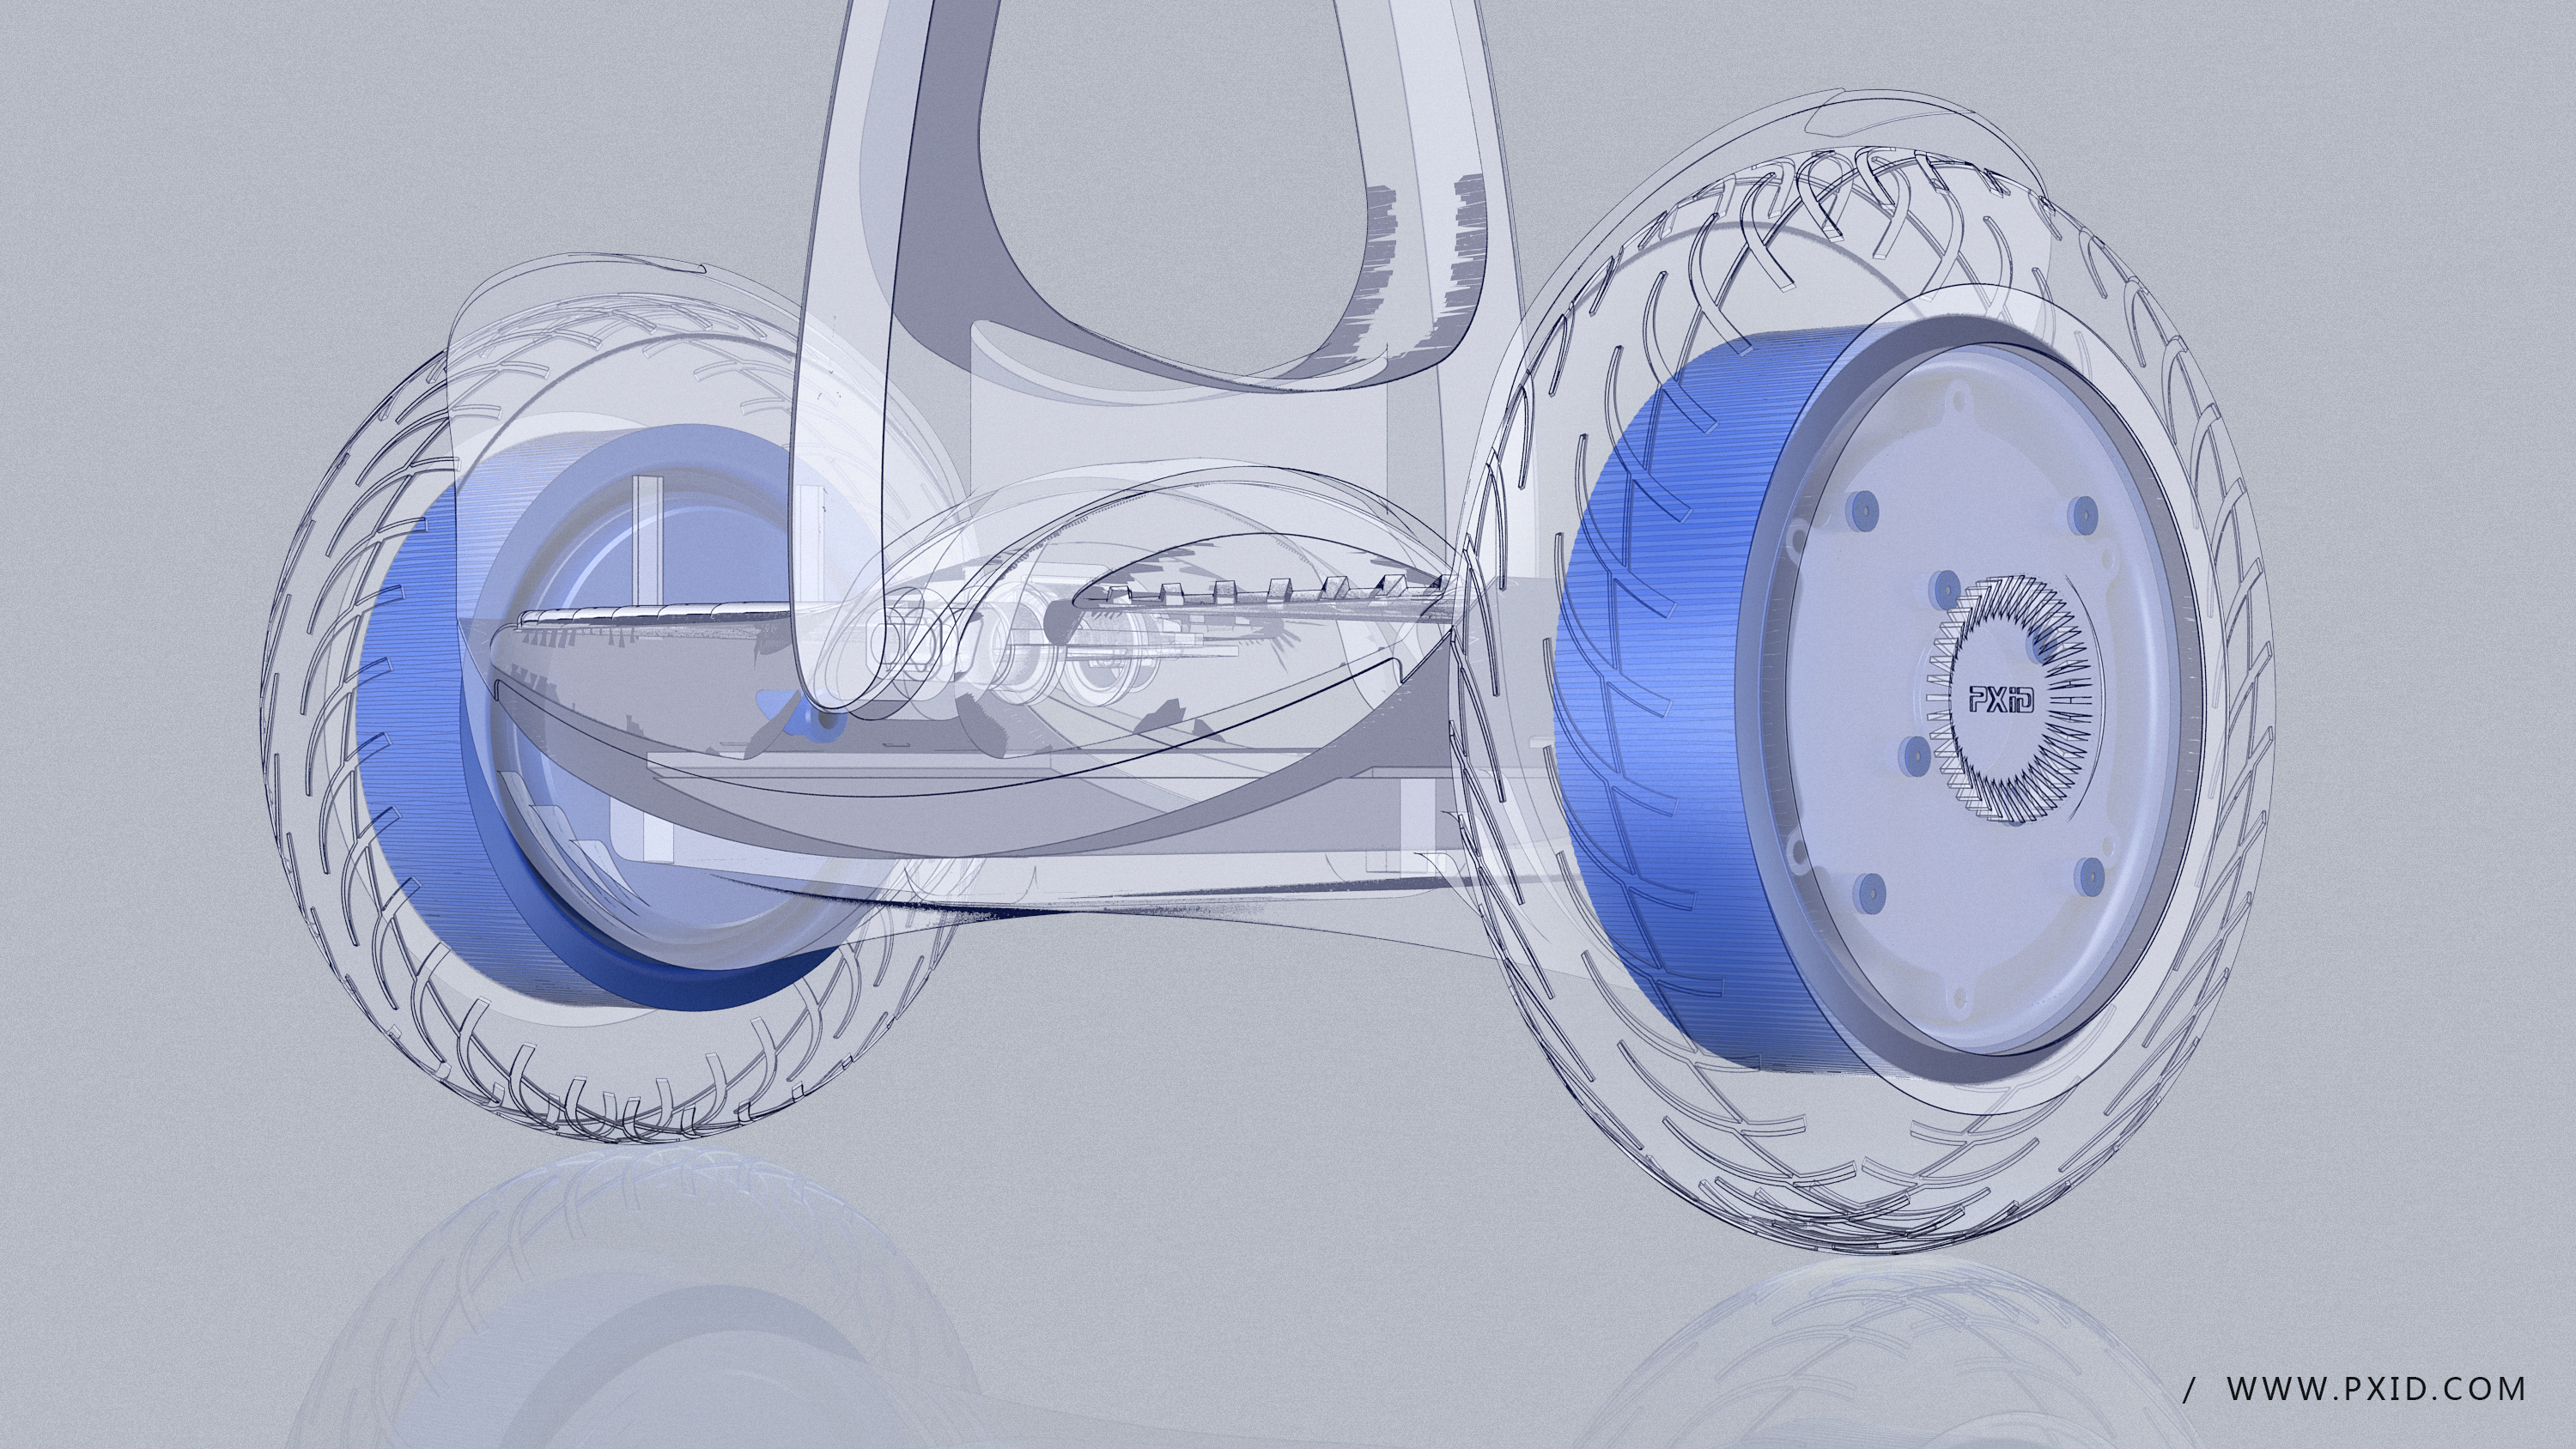 Design of water drop type balance wheel